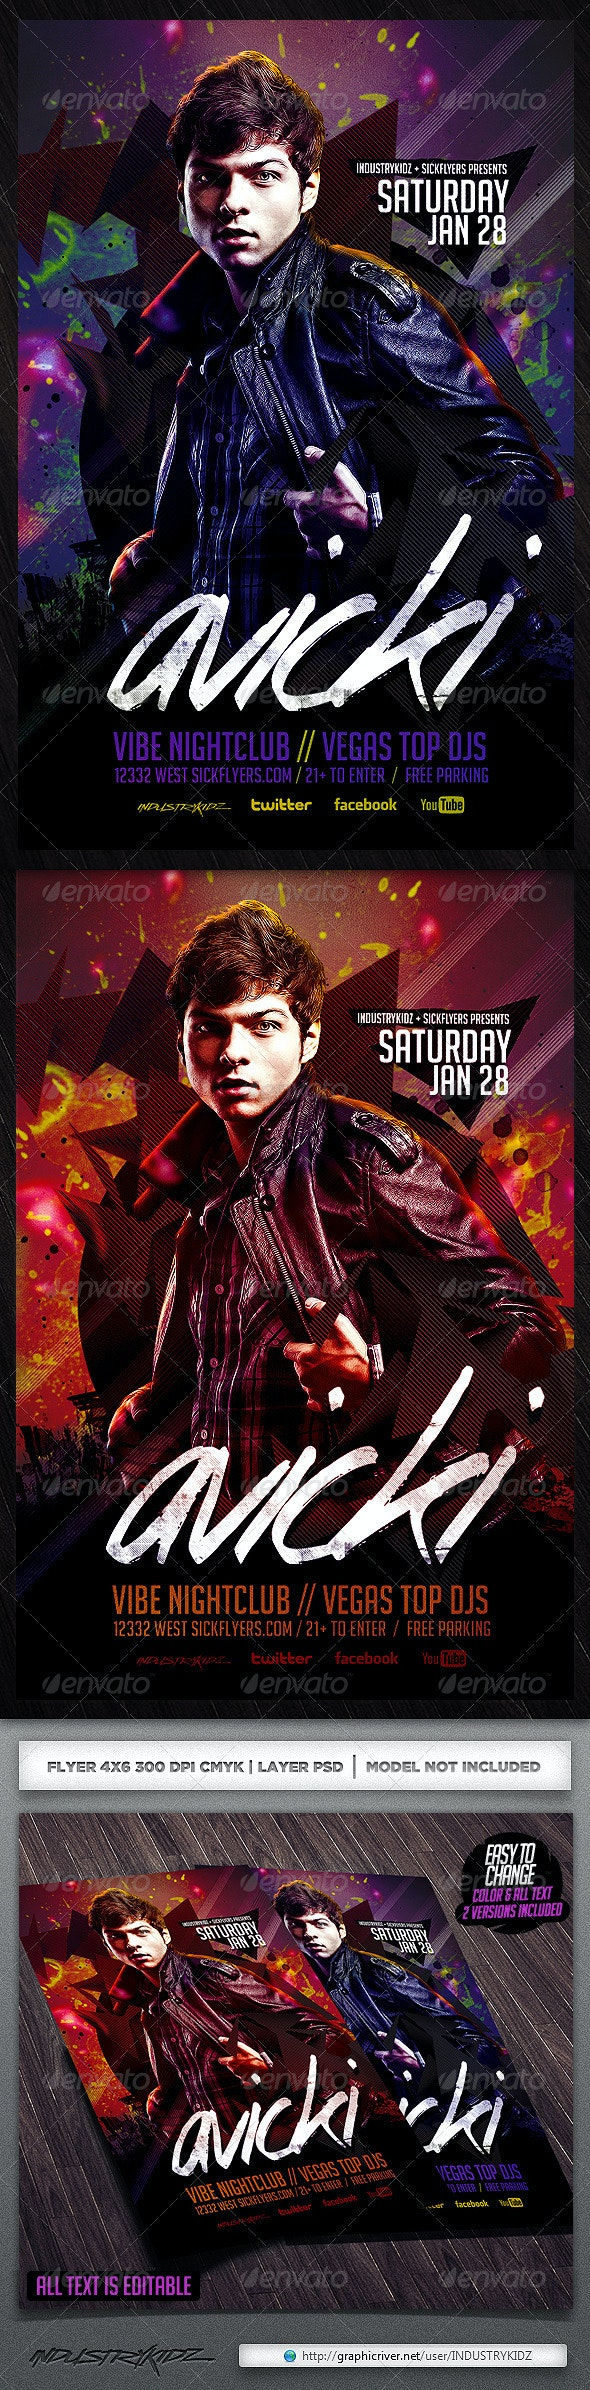 Electro House Music Flyer Template - Clubs & Parties Events